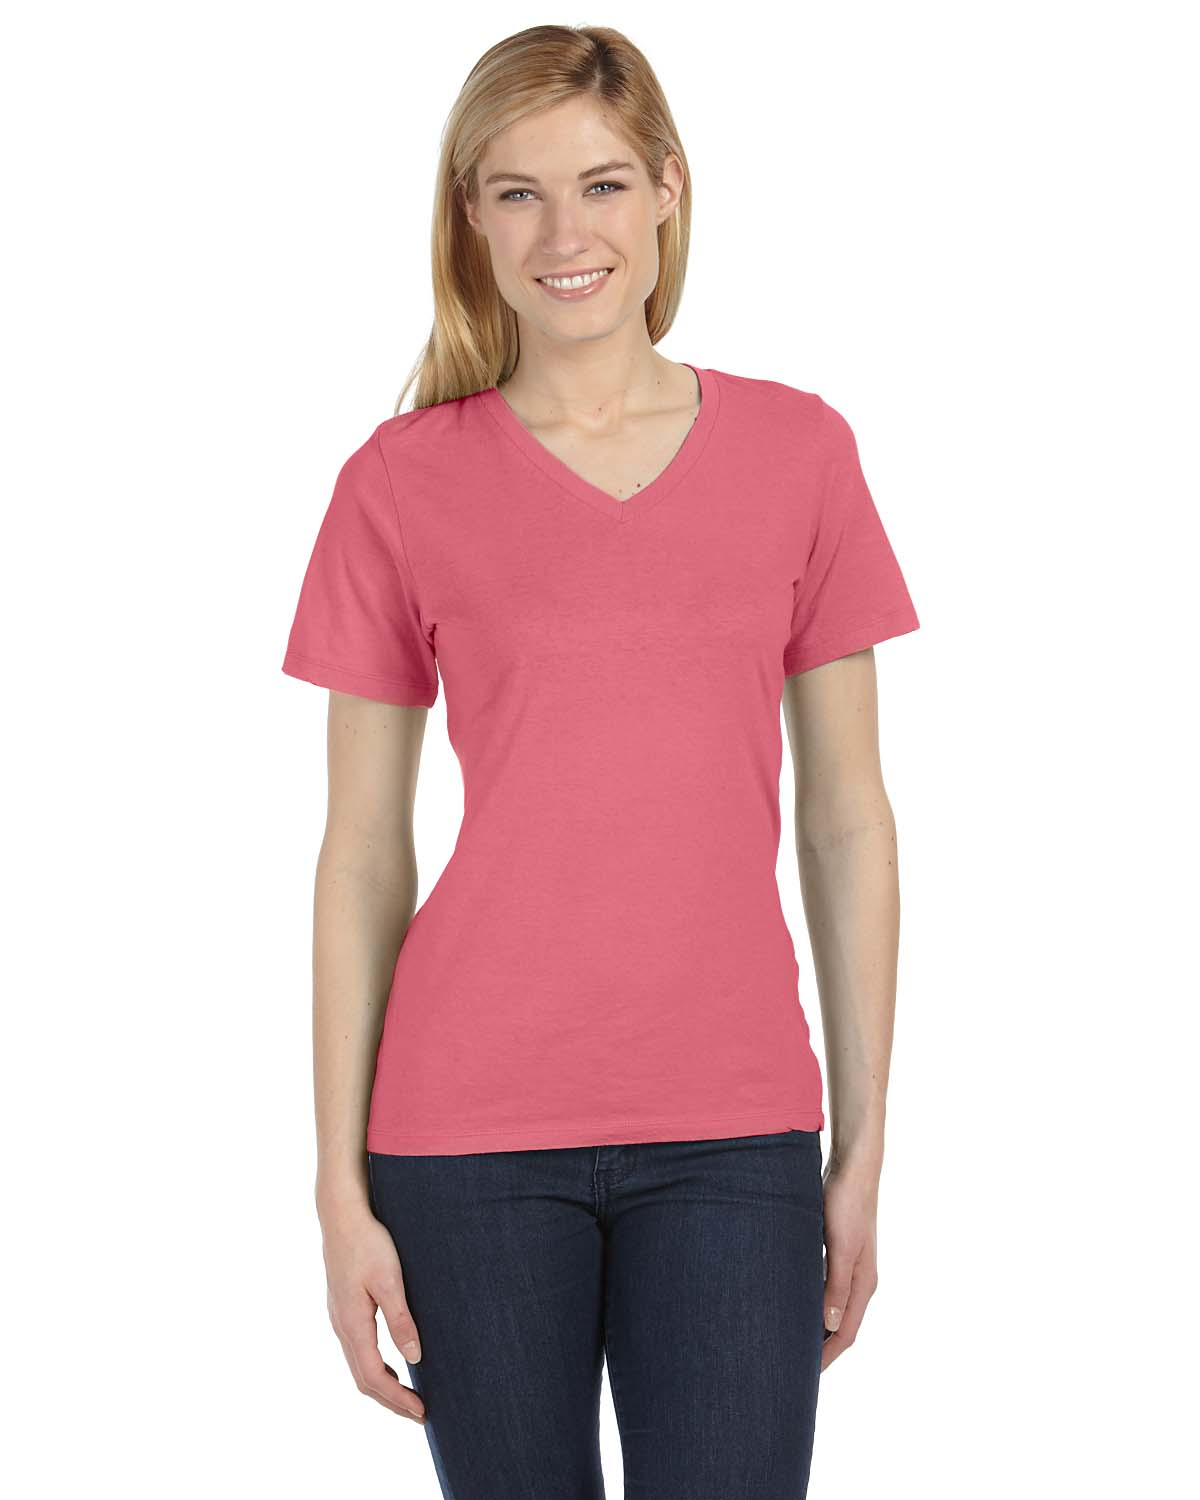 Bella Missys Relaxed Jersey Short-Sleeve V-Neck T-Shirt